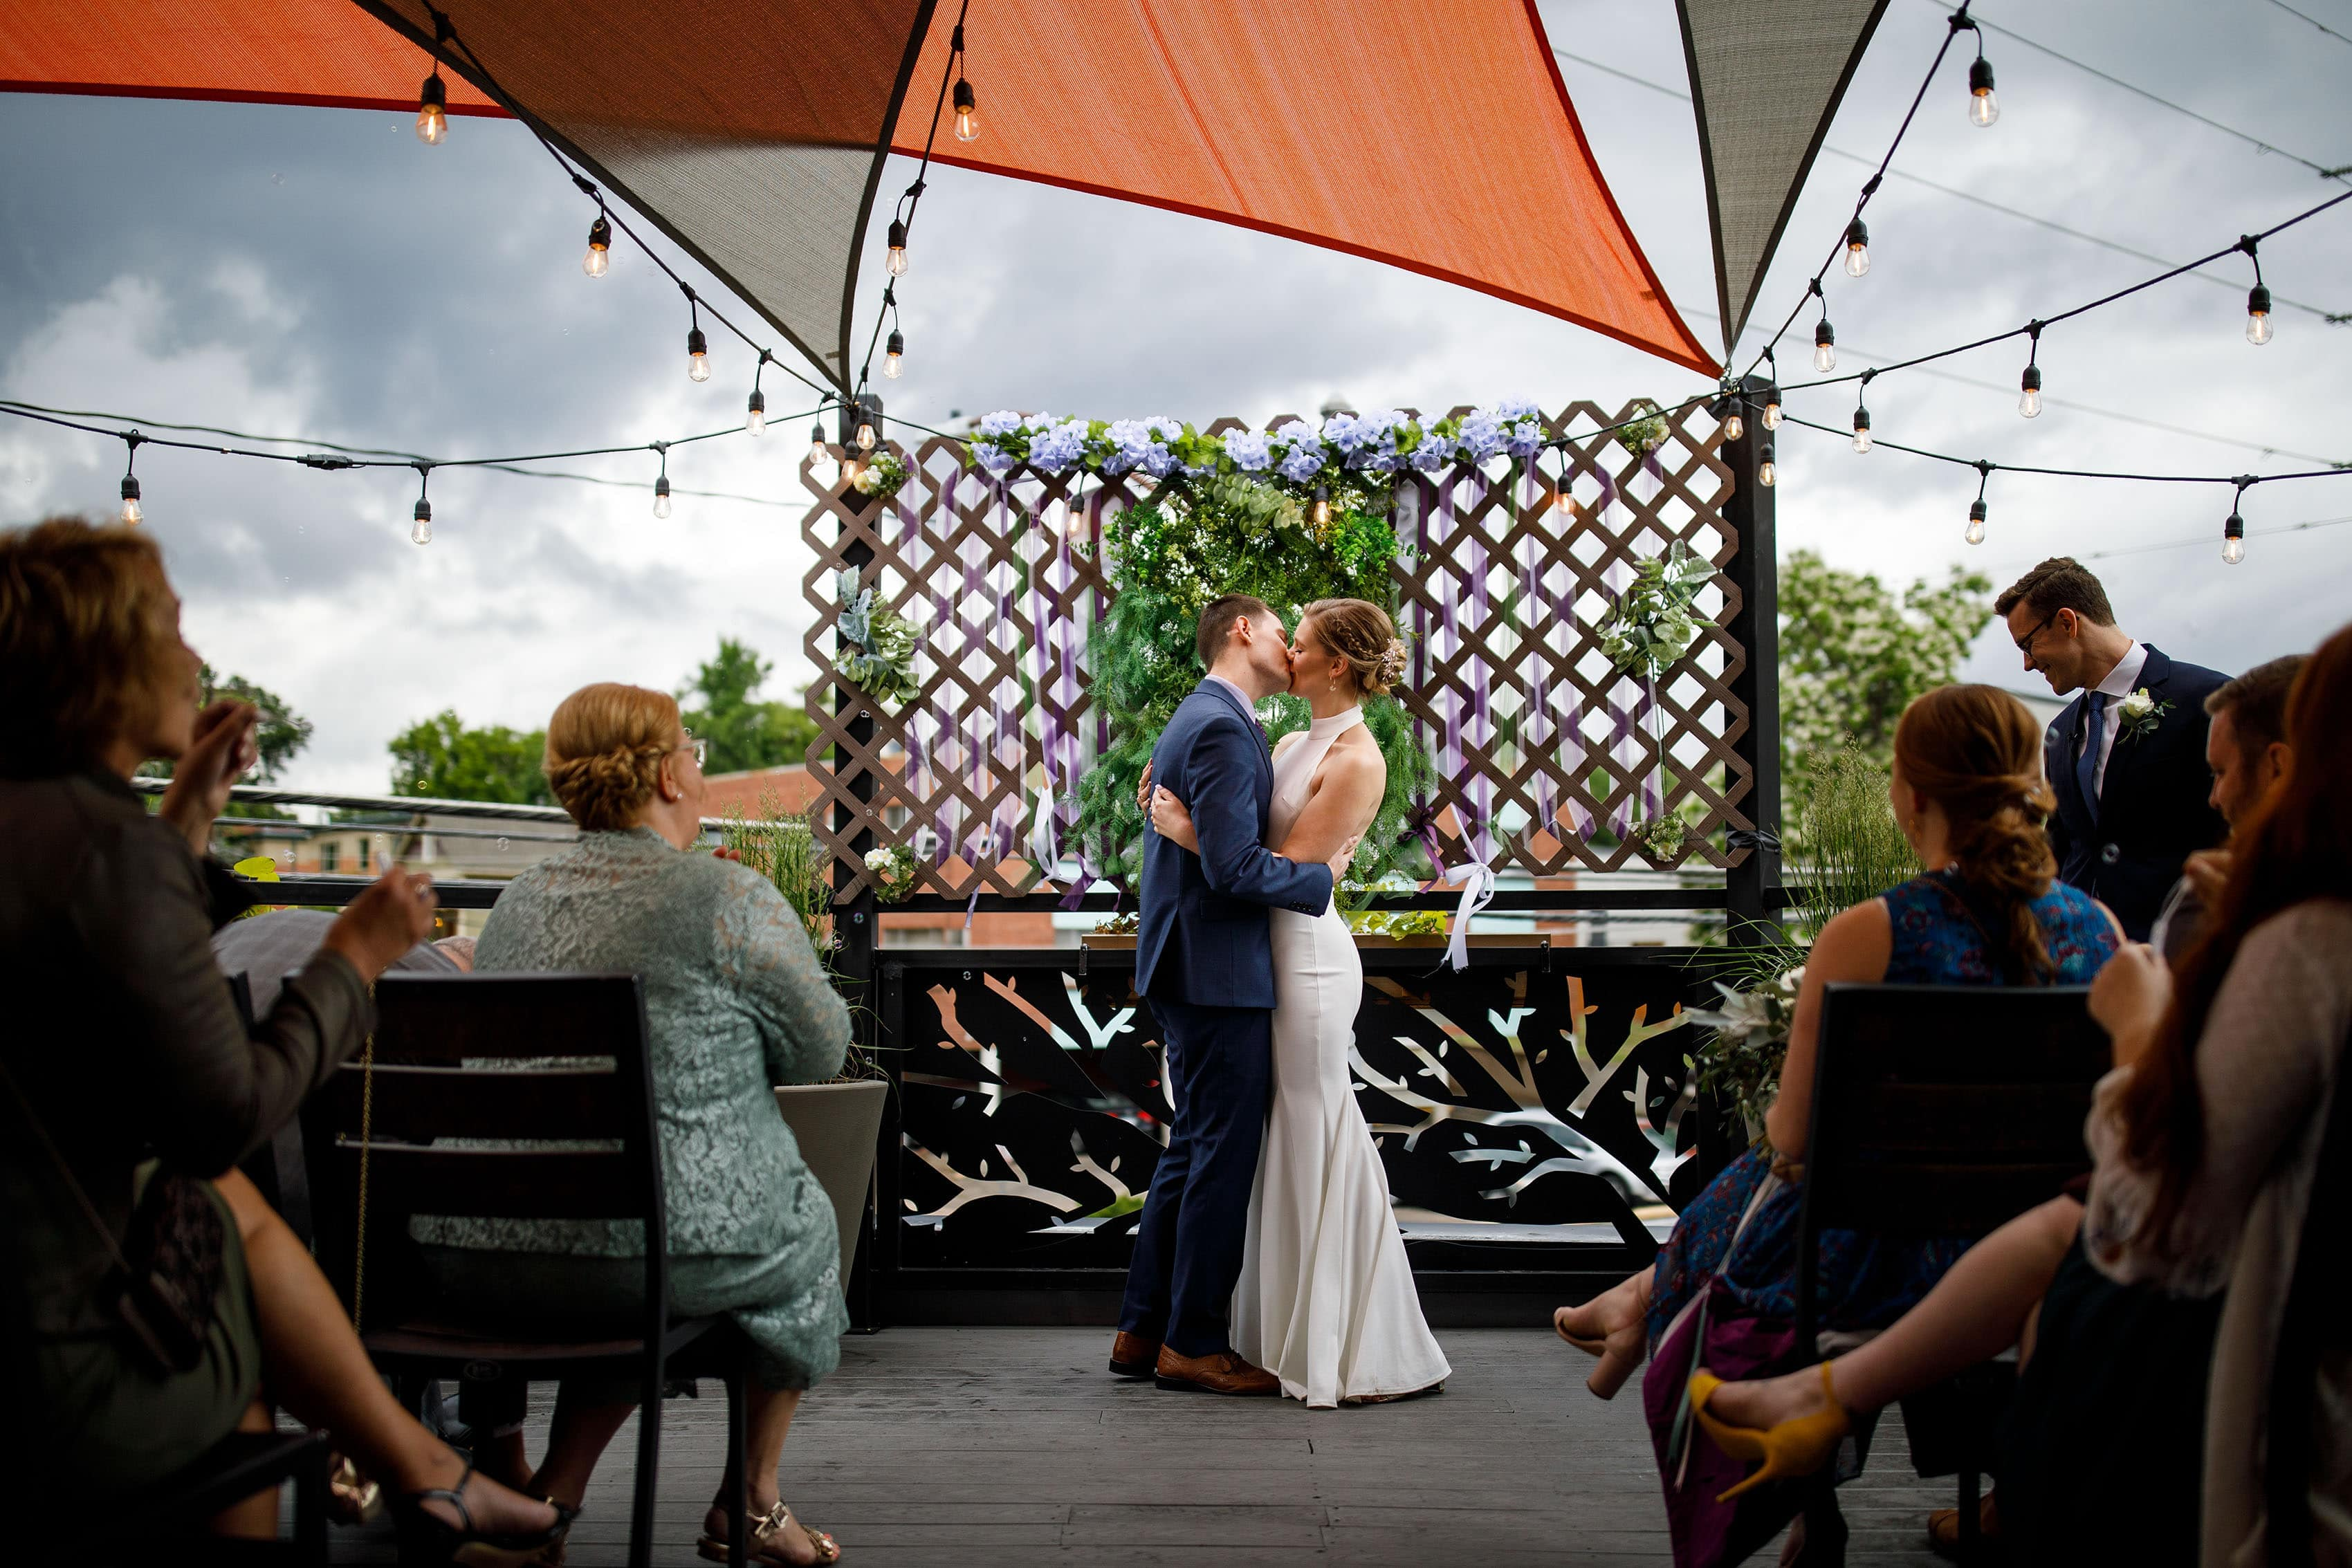 Rooftop wedding ceremony at Briar Common Brewery